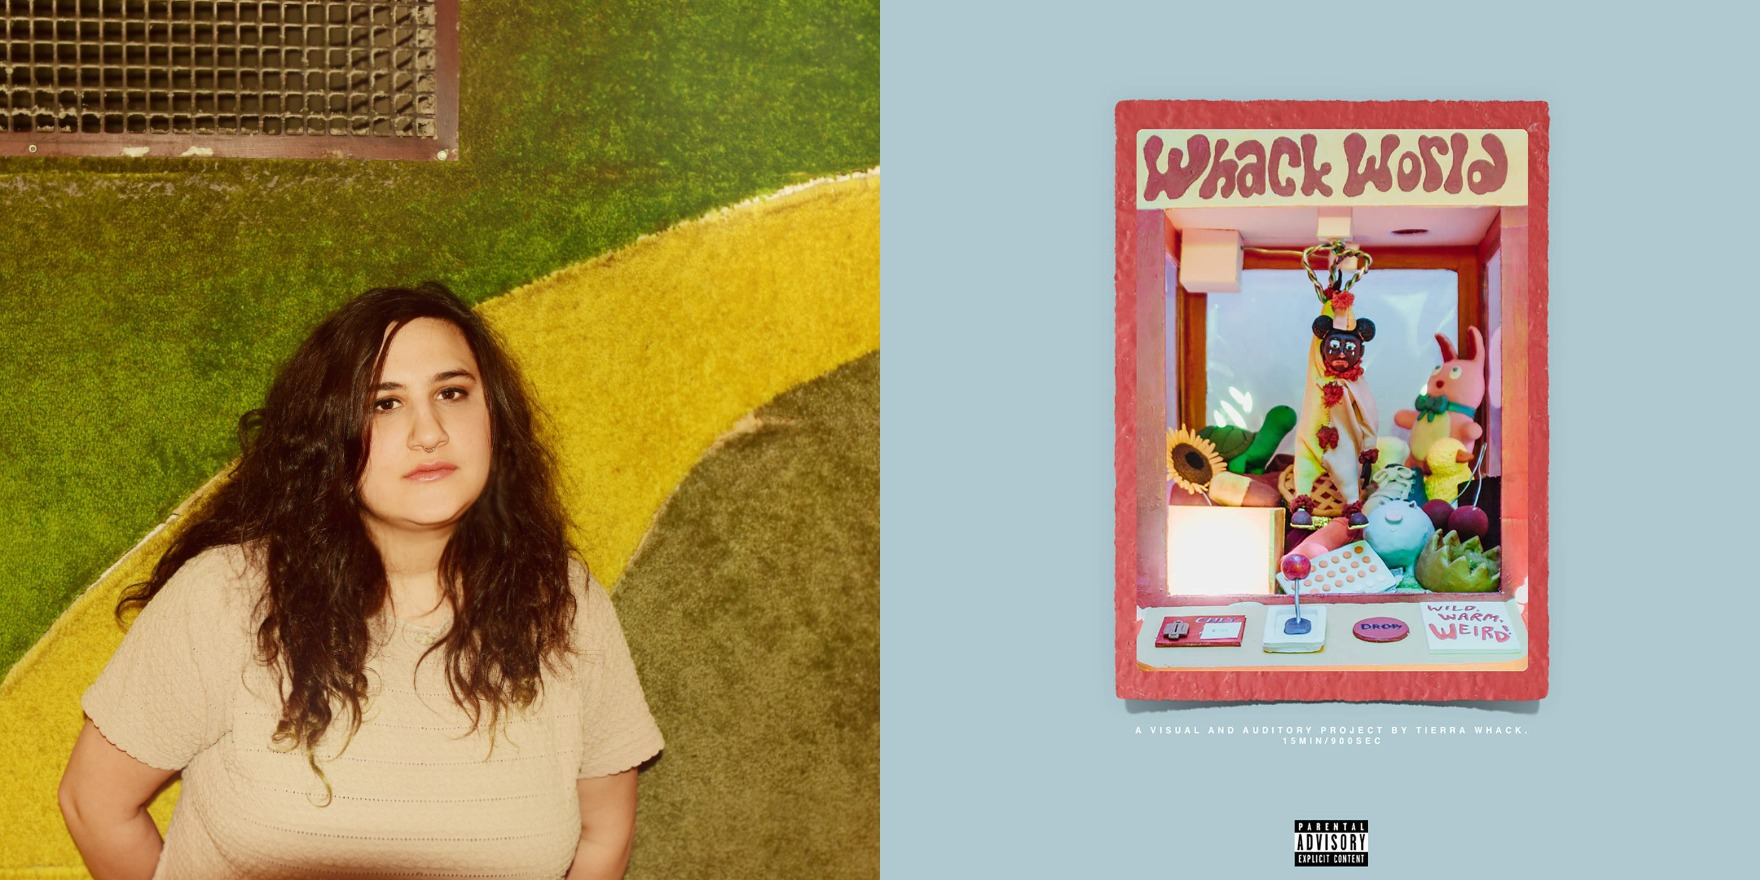 Best Of 2018 Ellen Kempner S Palehound Favorite Album Of 2018 Is Tierra Whack S Whack World